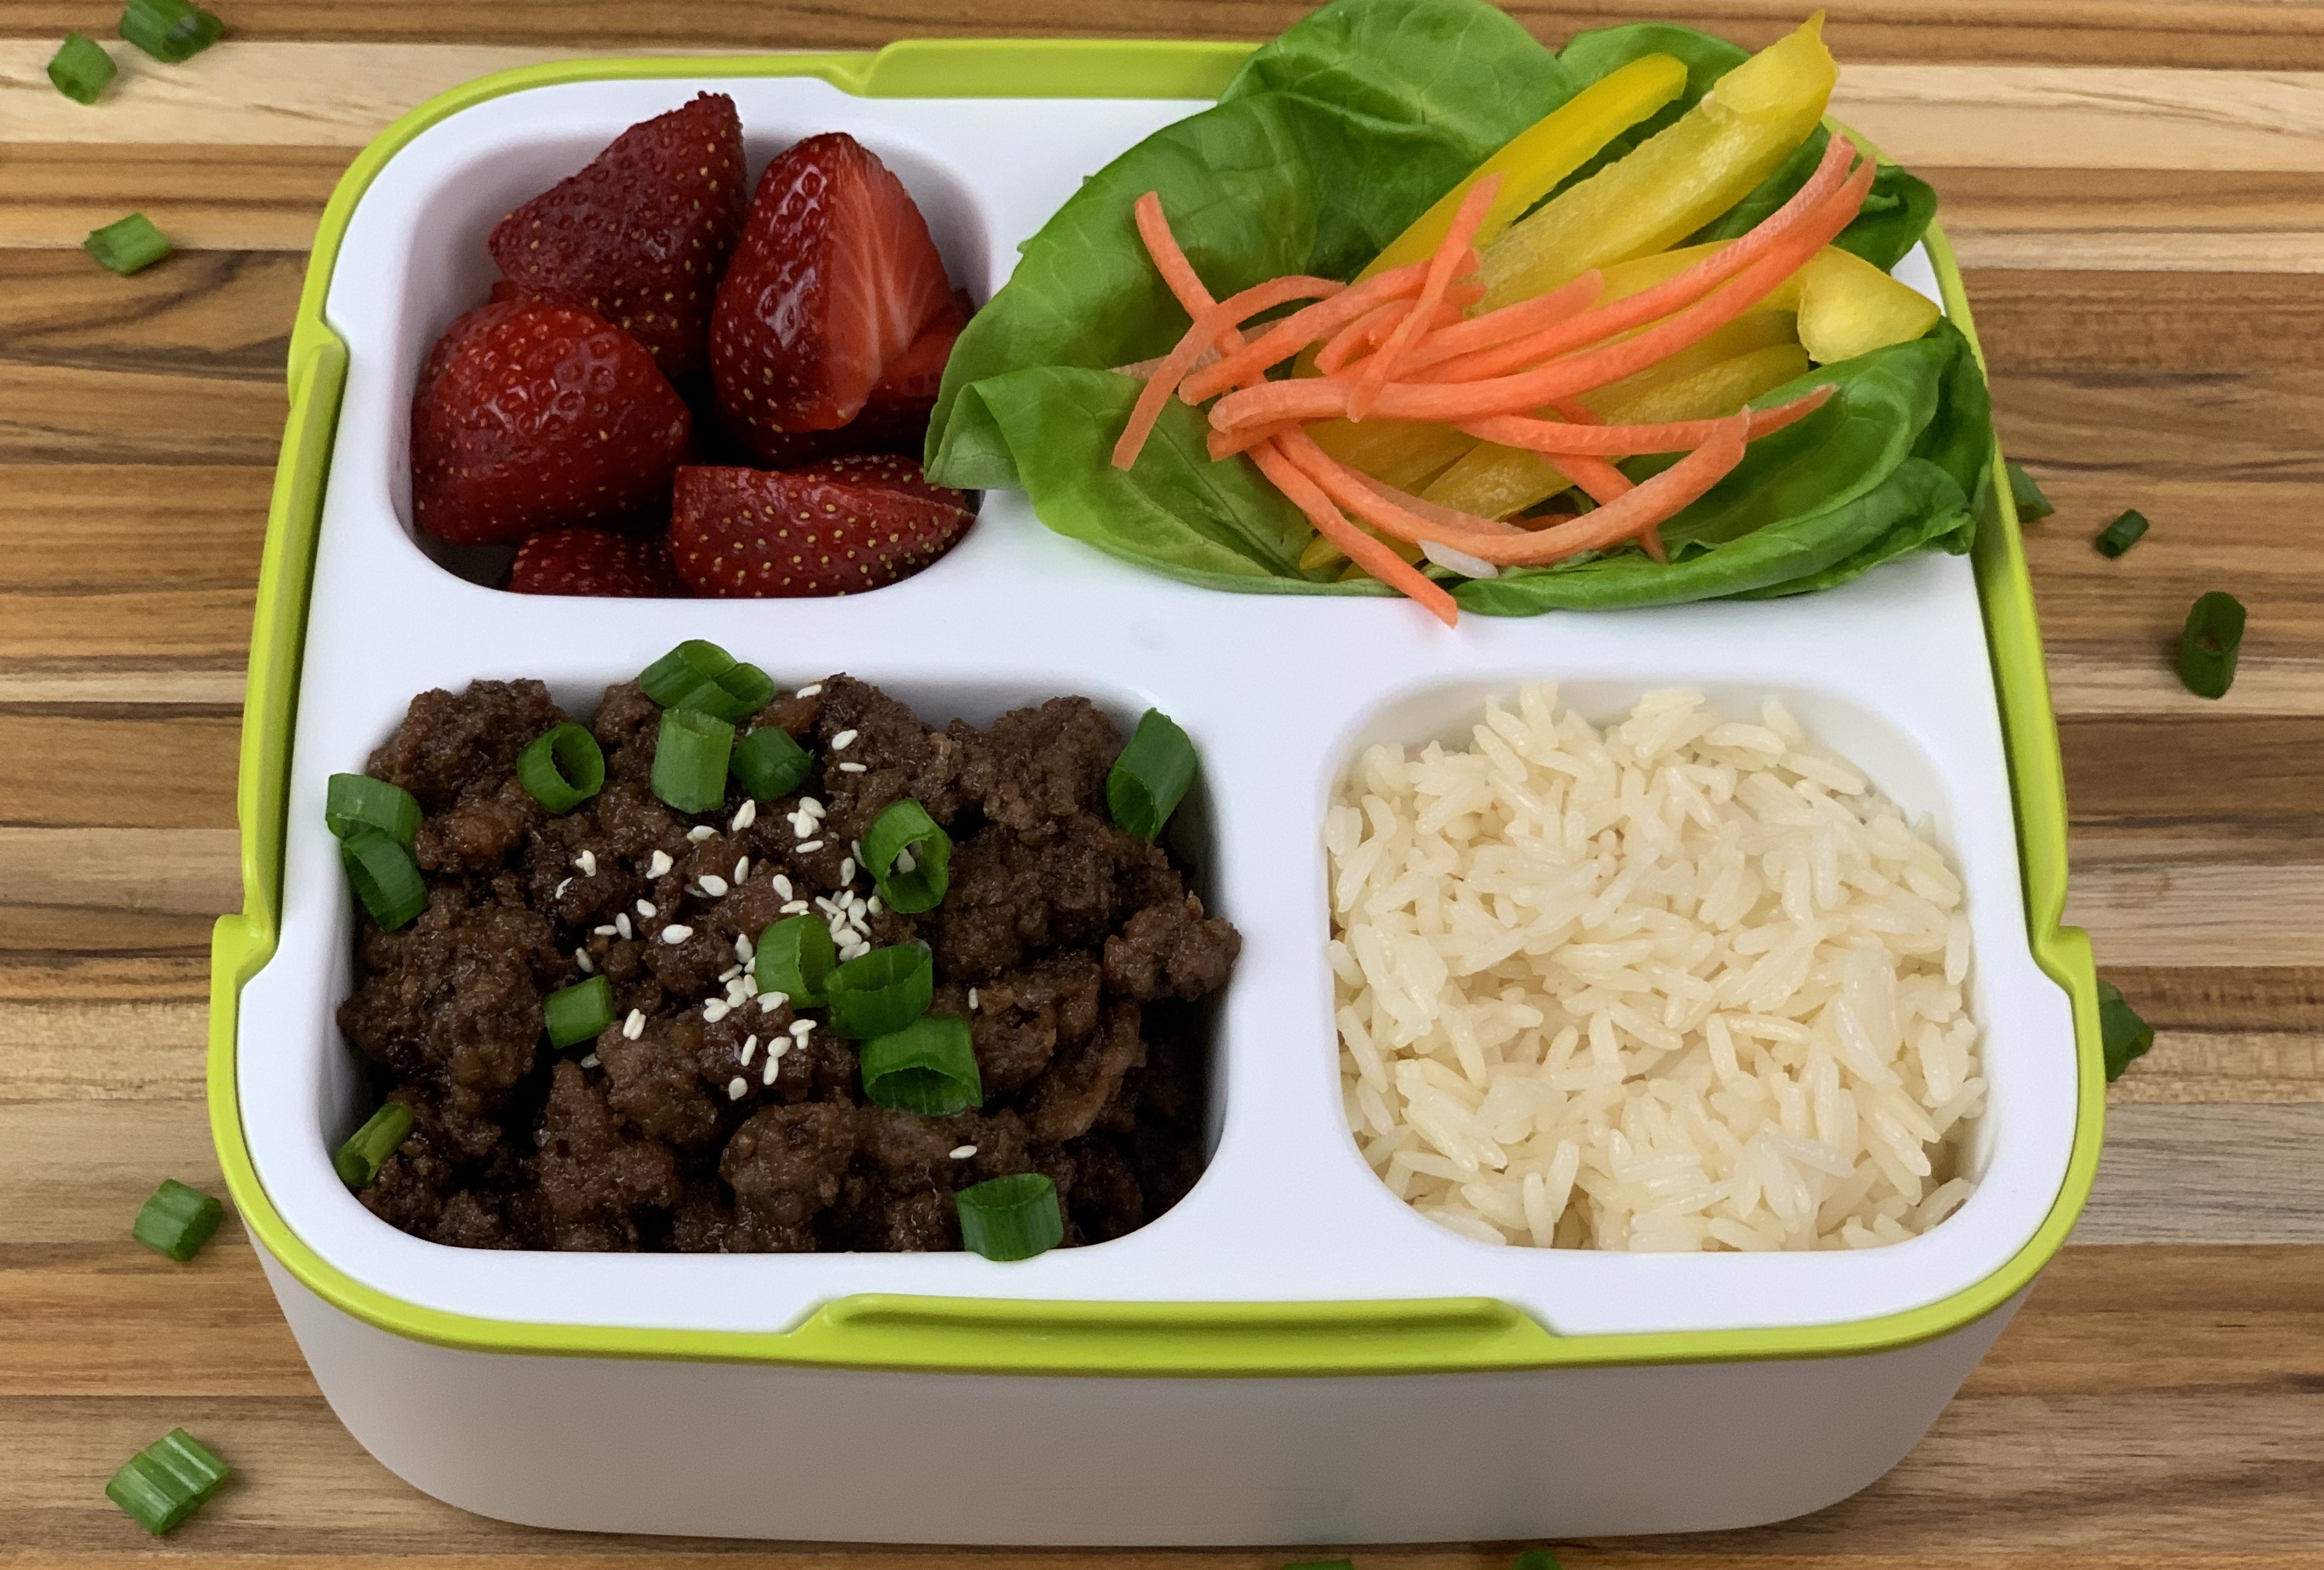 Full Bento Box with Fruits, Veggies, Rice and Asian-Inspired Beef